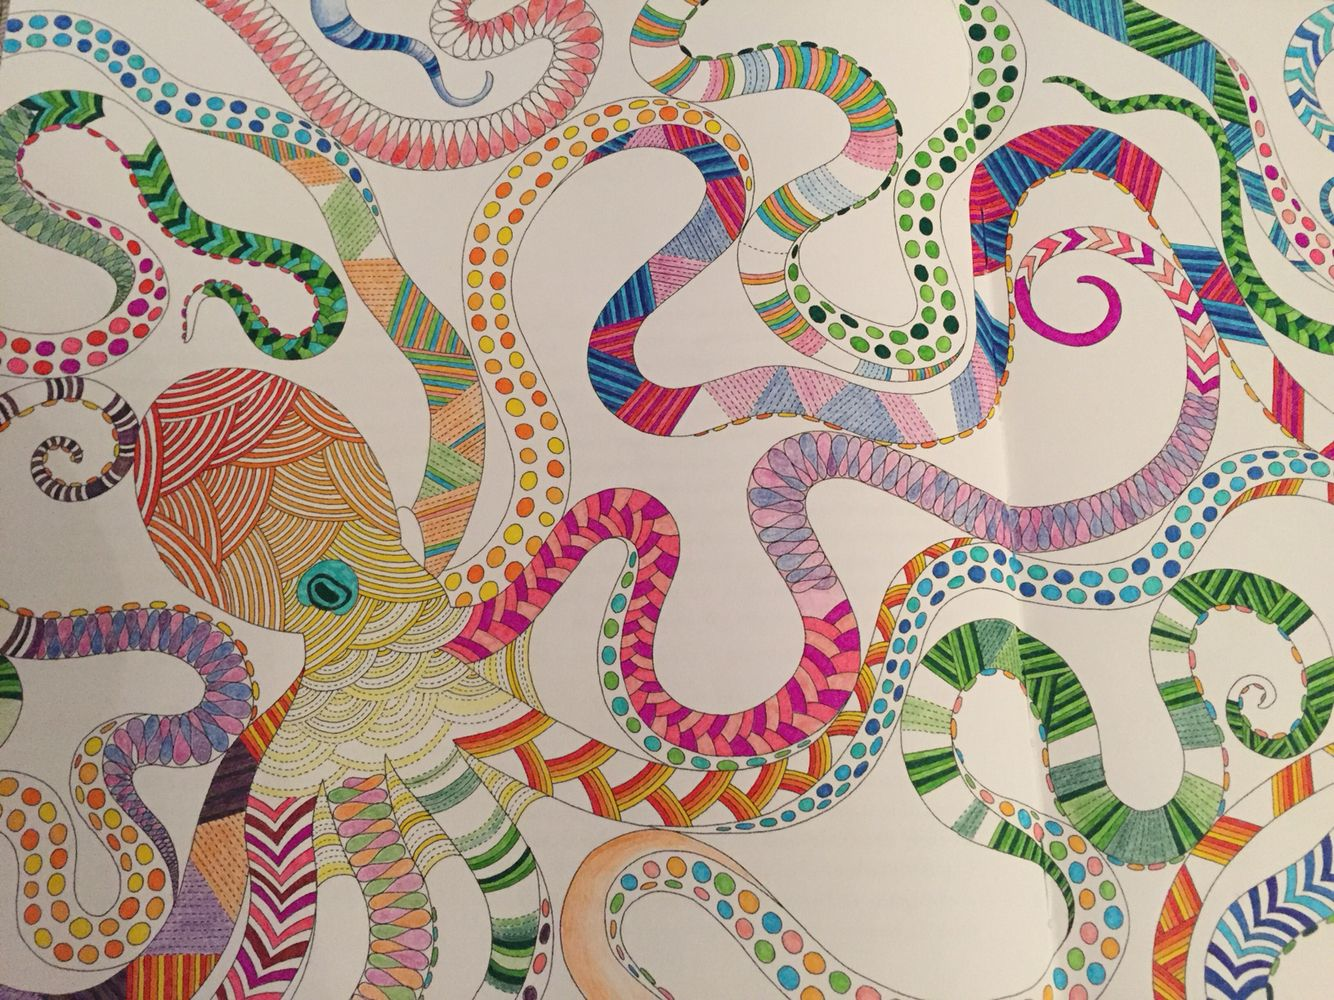 Octopus Page Of Animal Kingdom By Millie Marotta